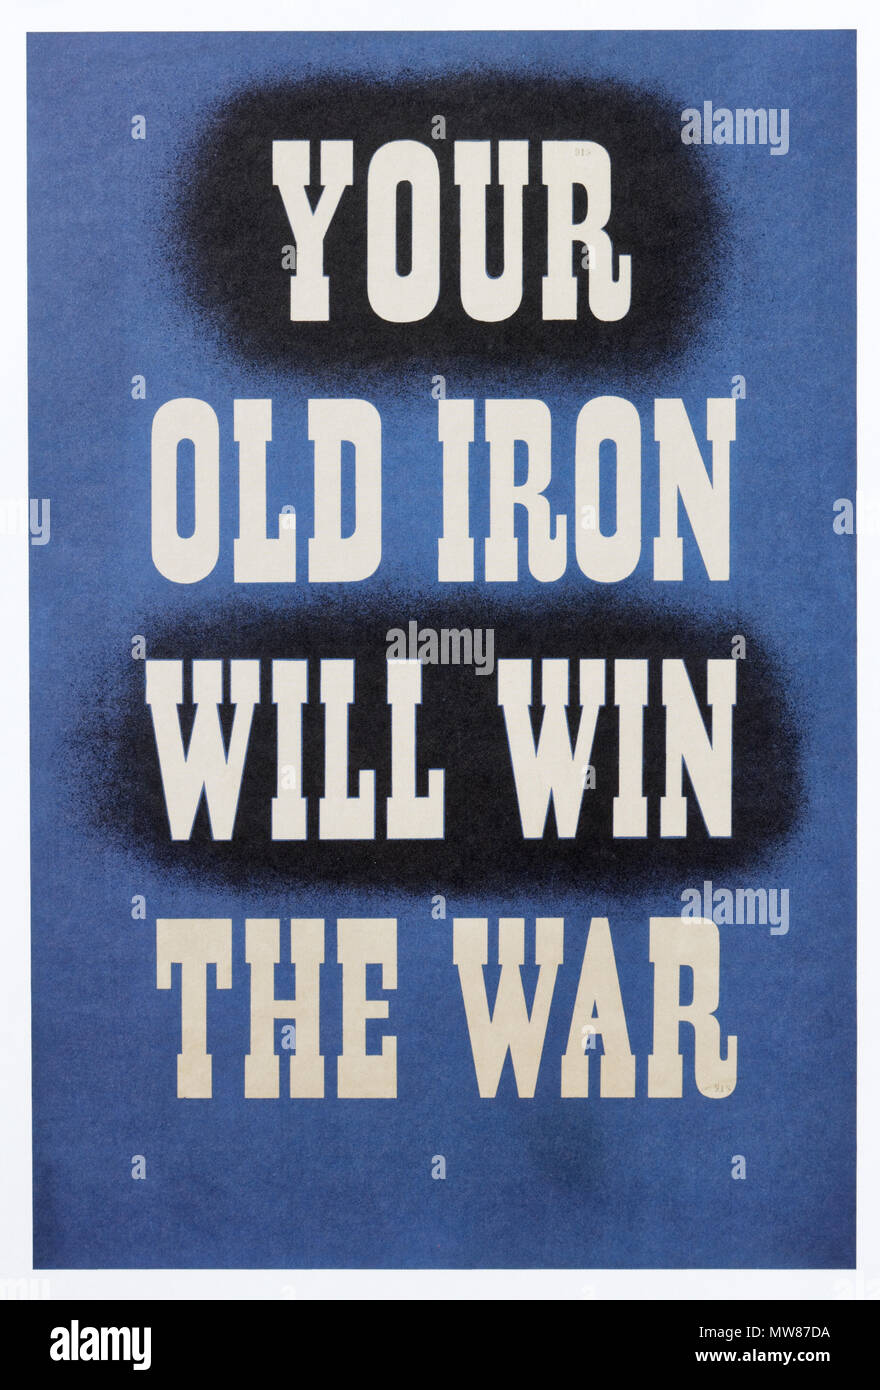 A second world war poster encouraging people to donate scrap metal to help the war effort - Your Old Iron Will Win The War - Stock Image